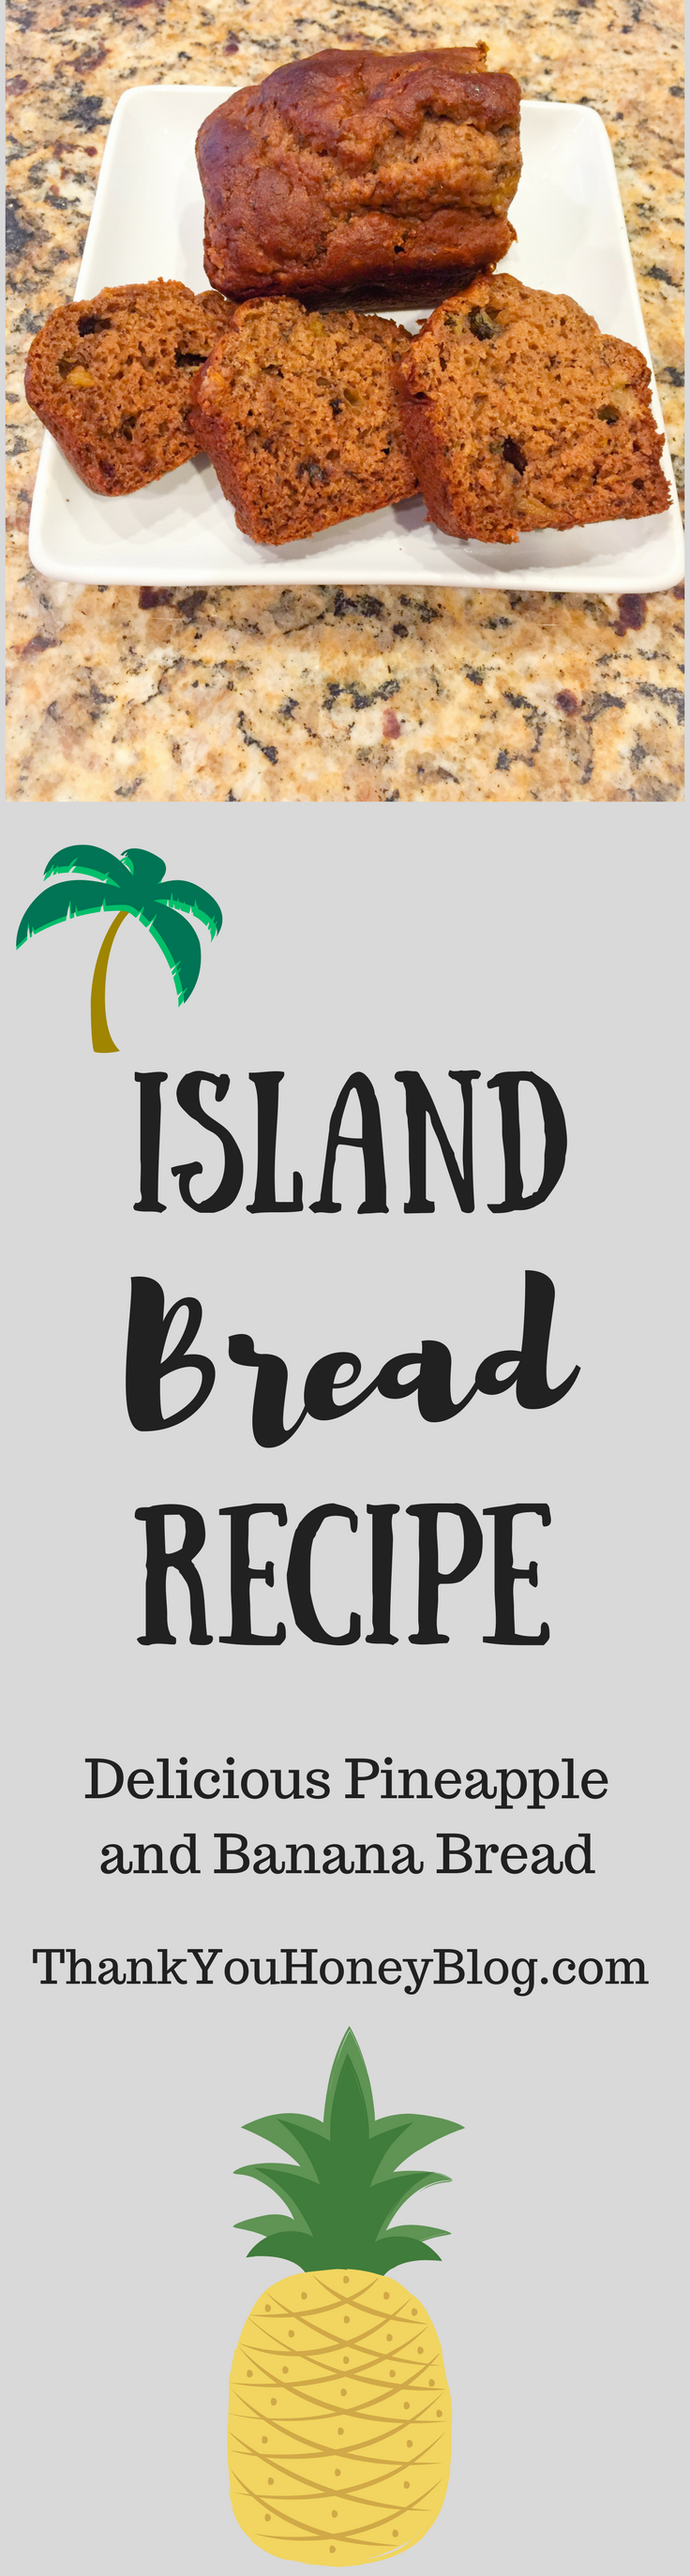 Island Bread Recipe